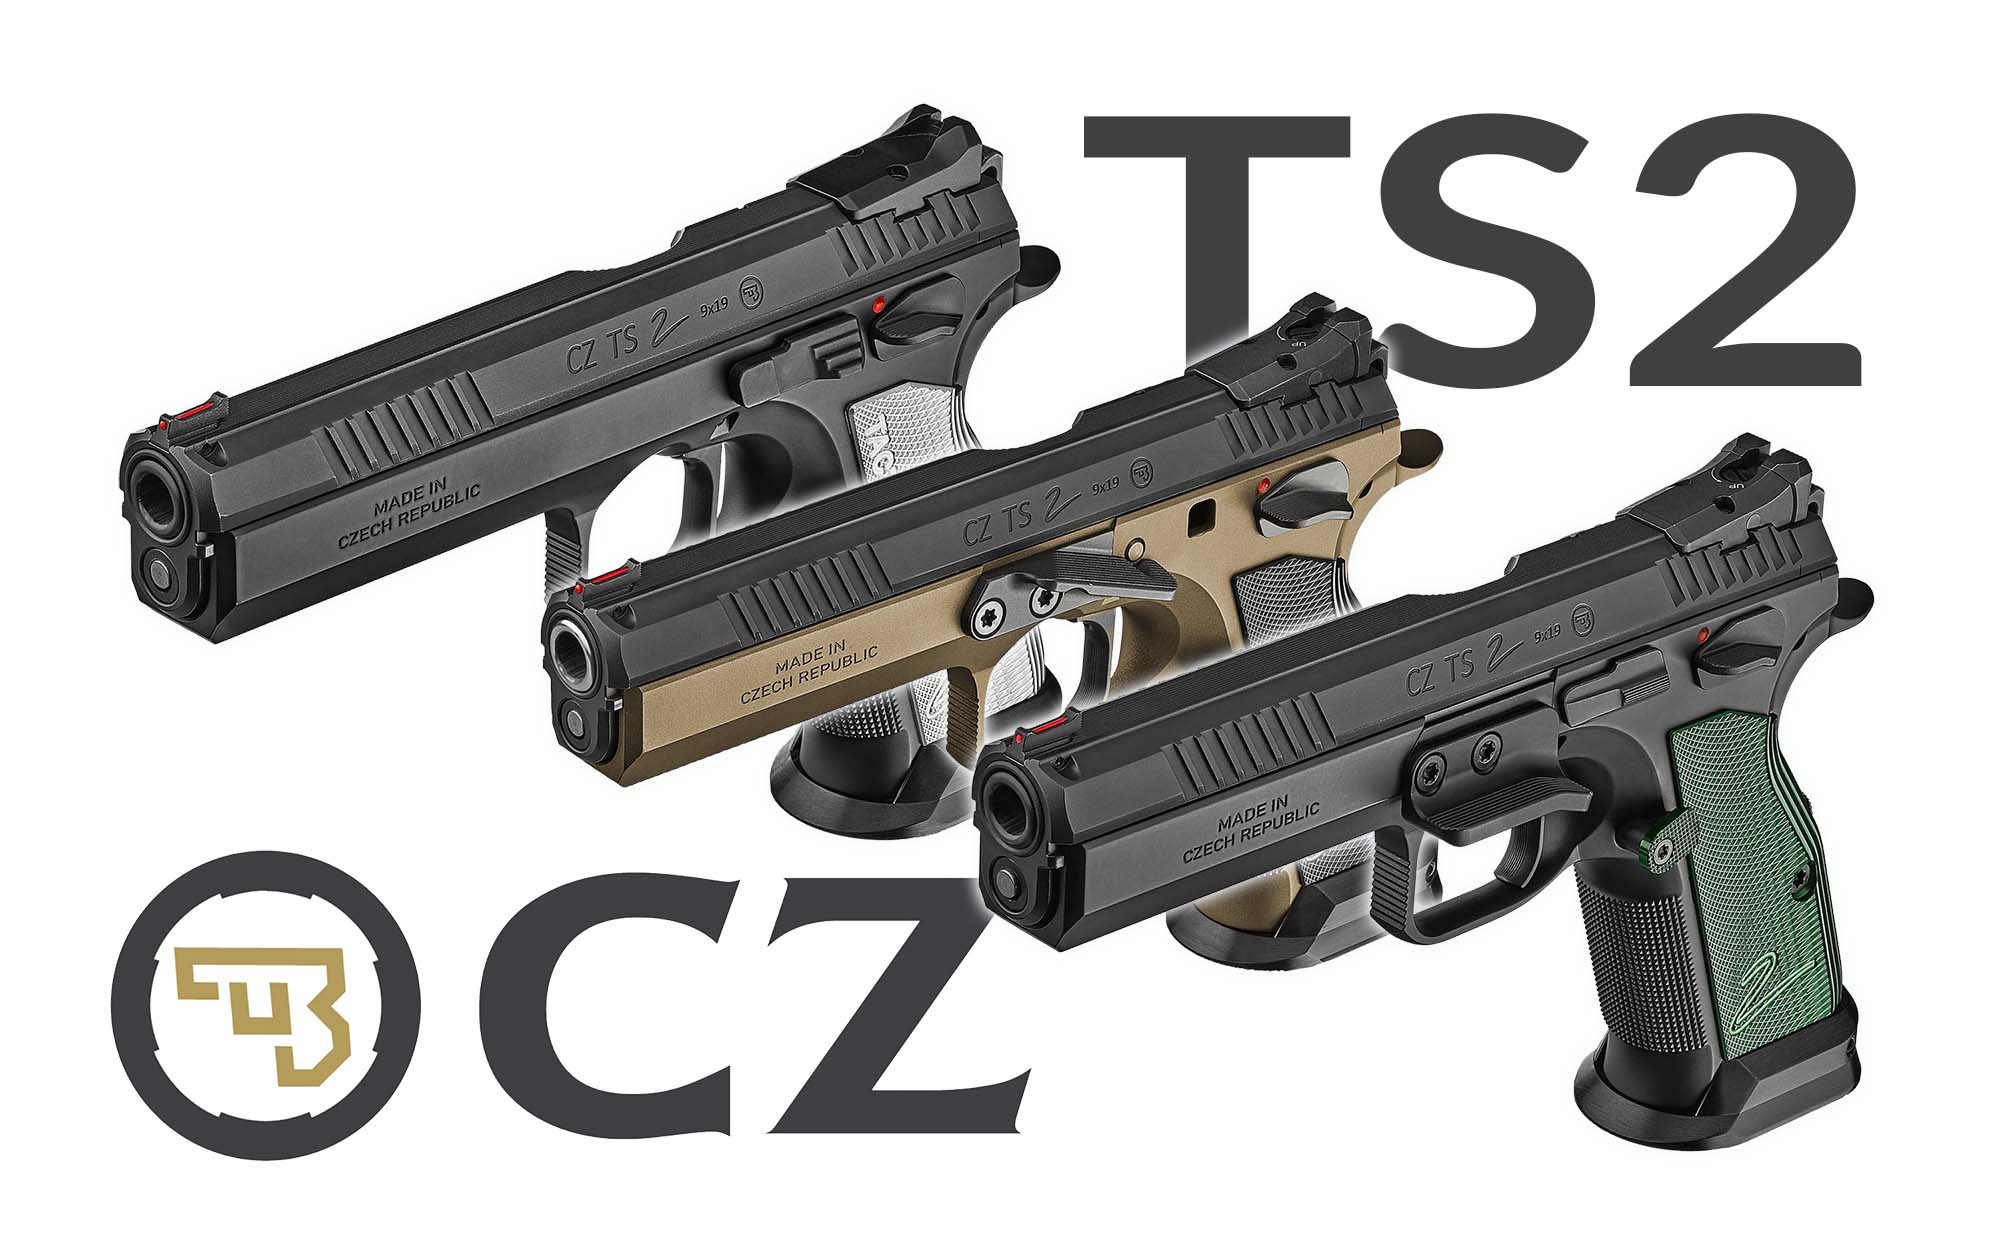 CZ TS2 pistol: a new generation in IPSC Standard Division | GUNSweek.com